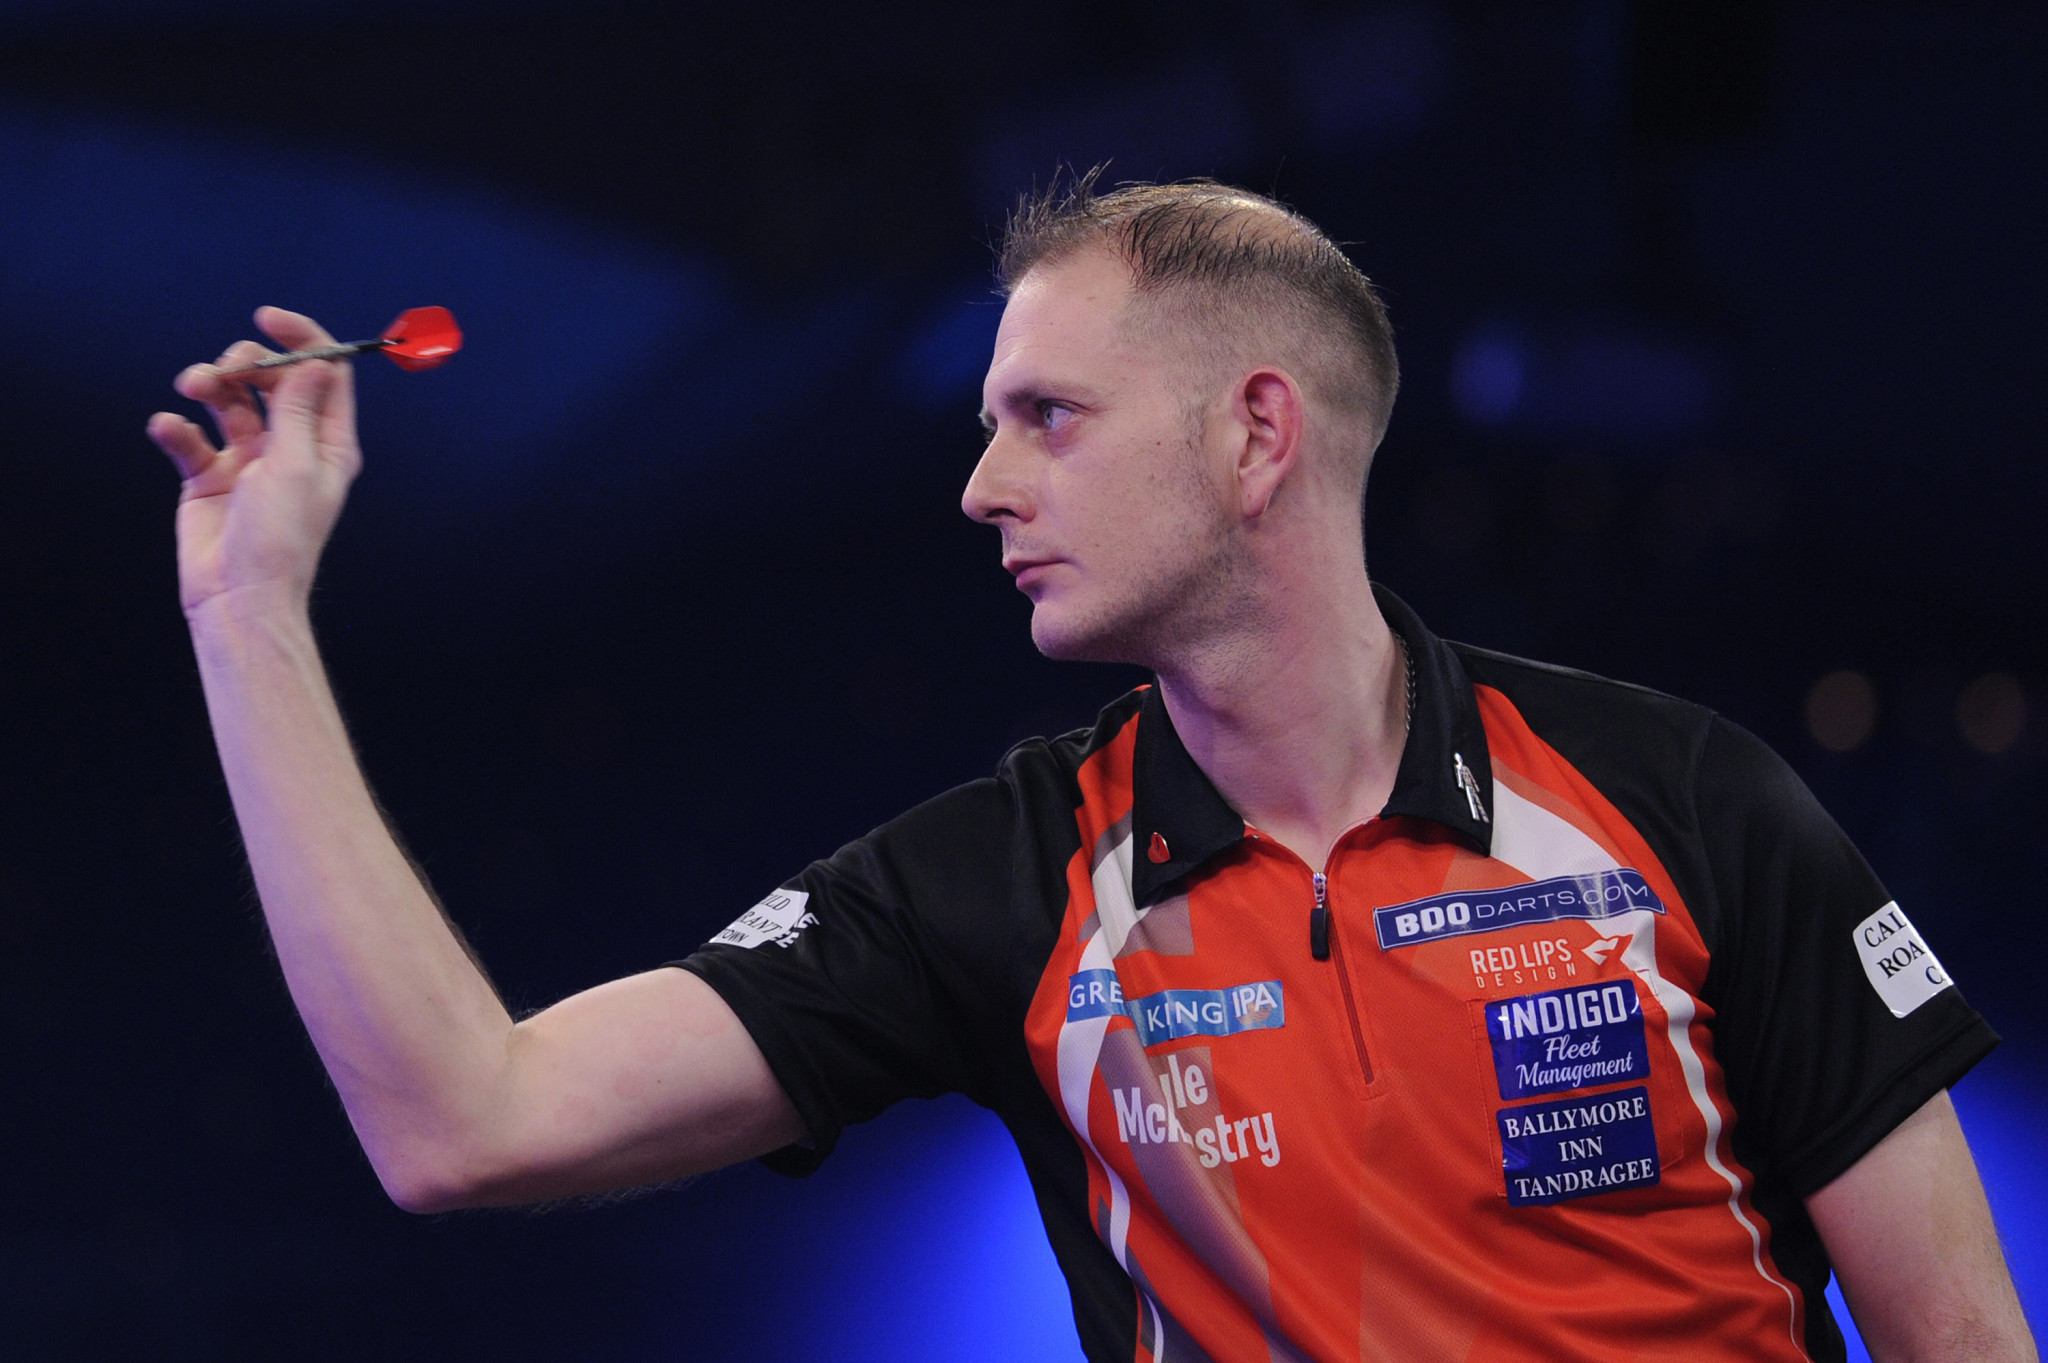 Northern Ireland darts player given eight-year match-fixing ban